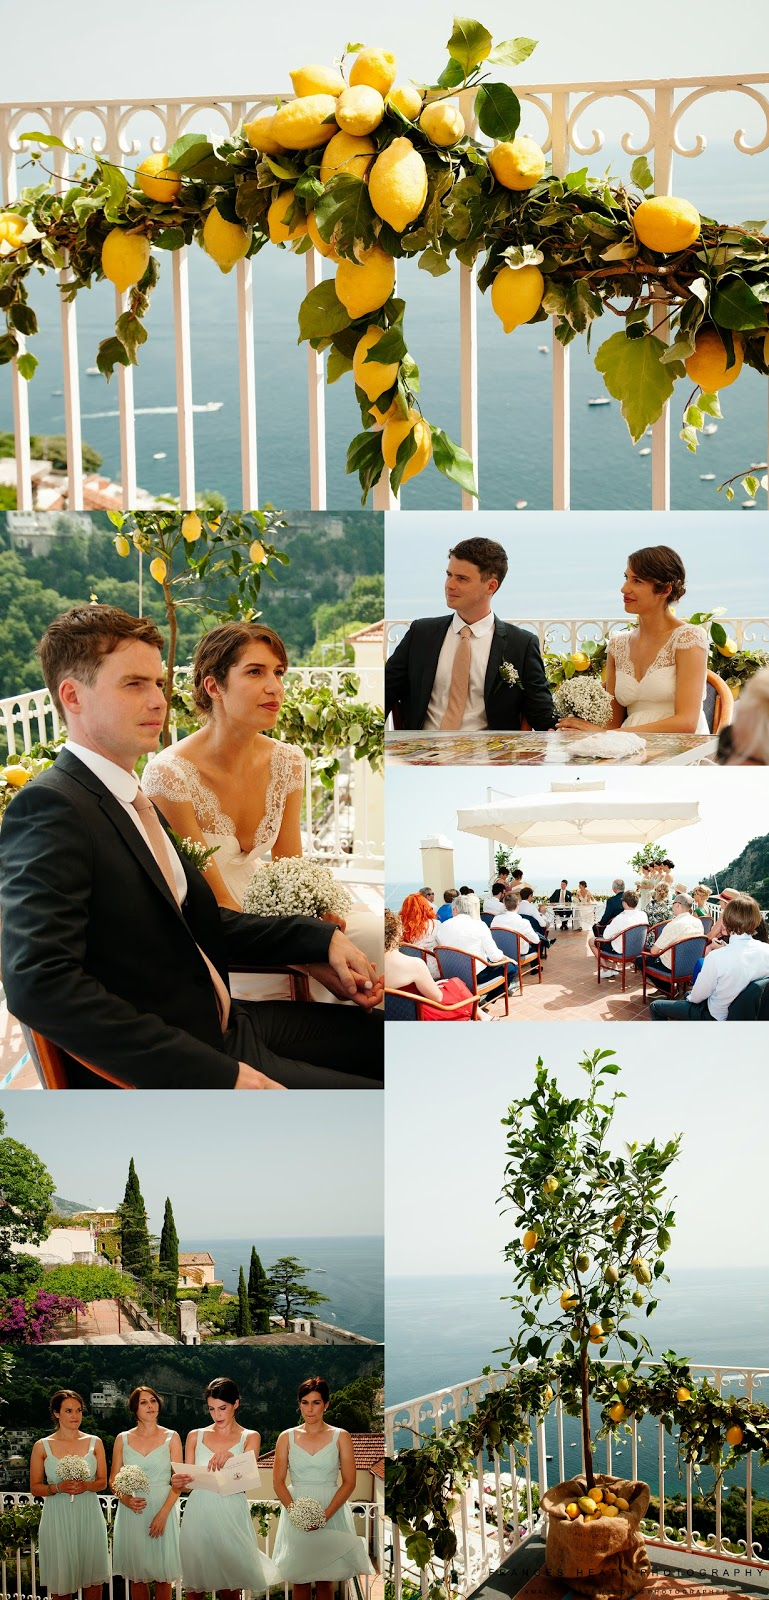 Wedding with lemon decorations at the Positano town hall